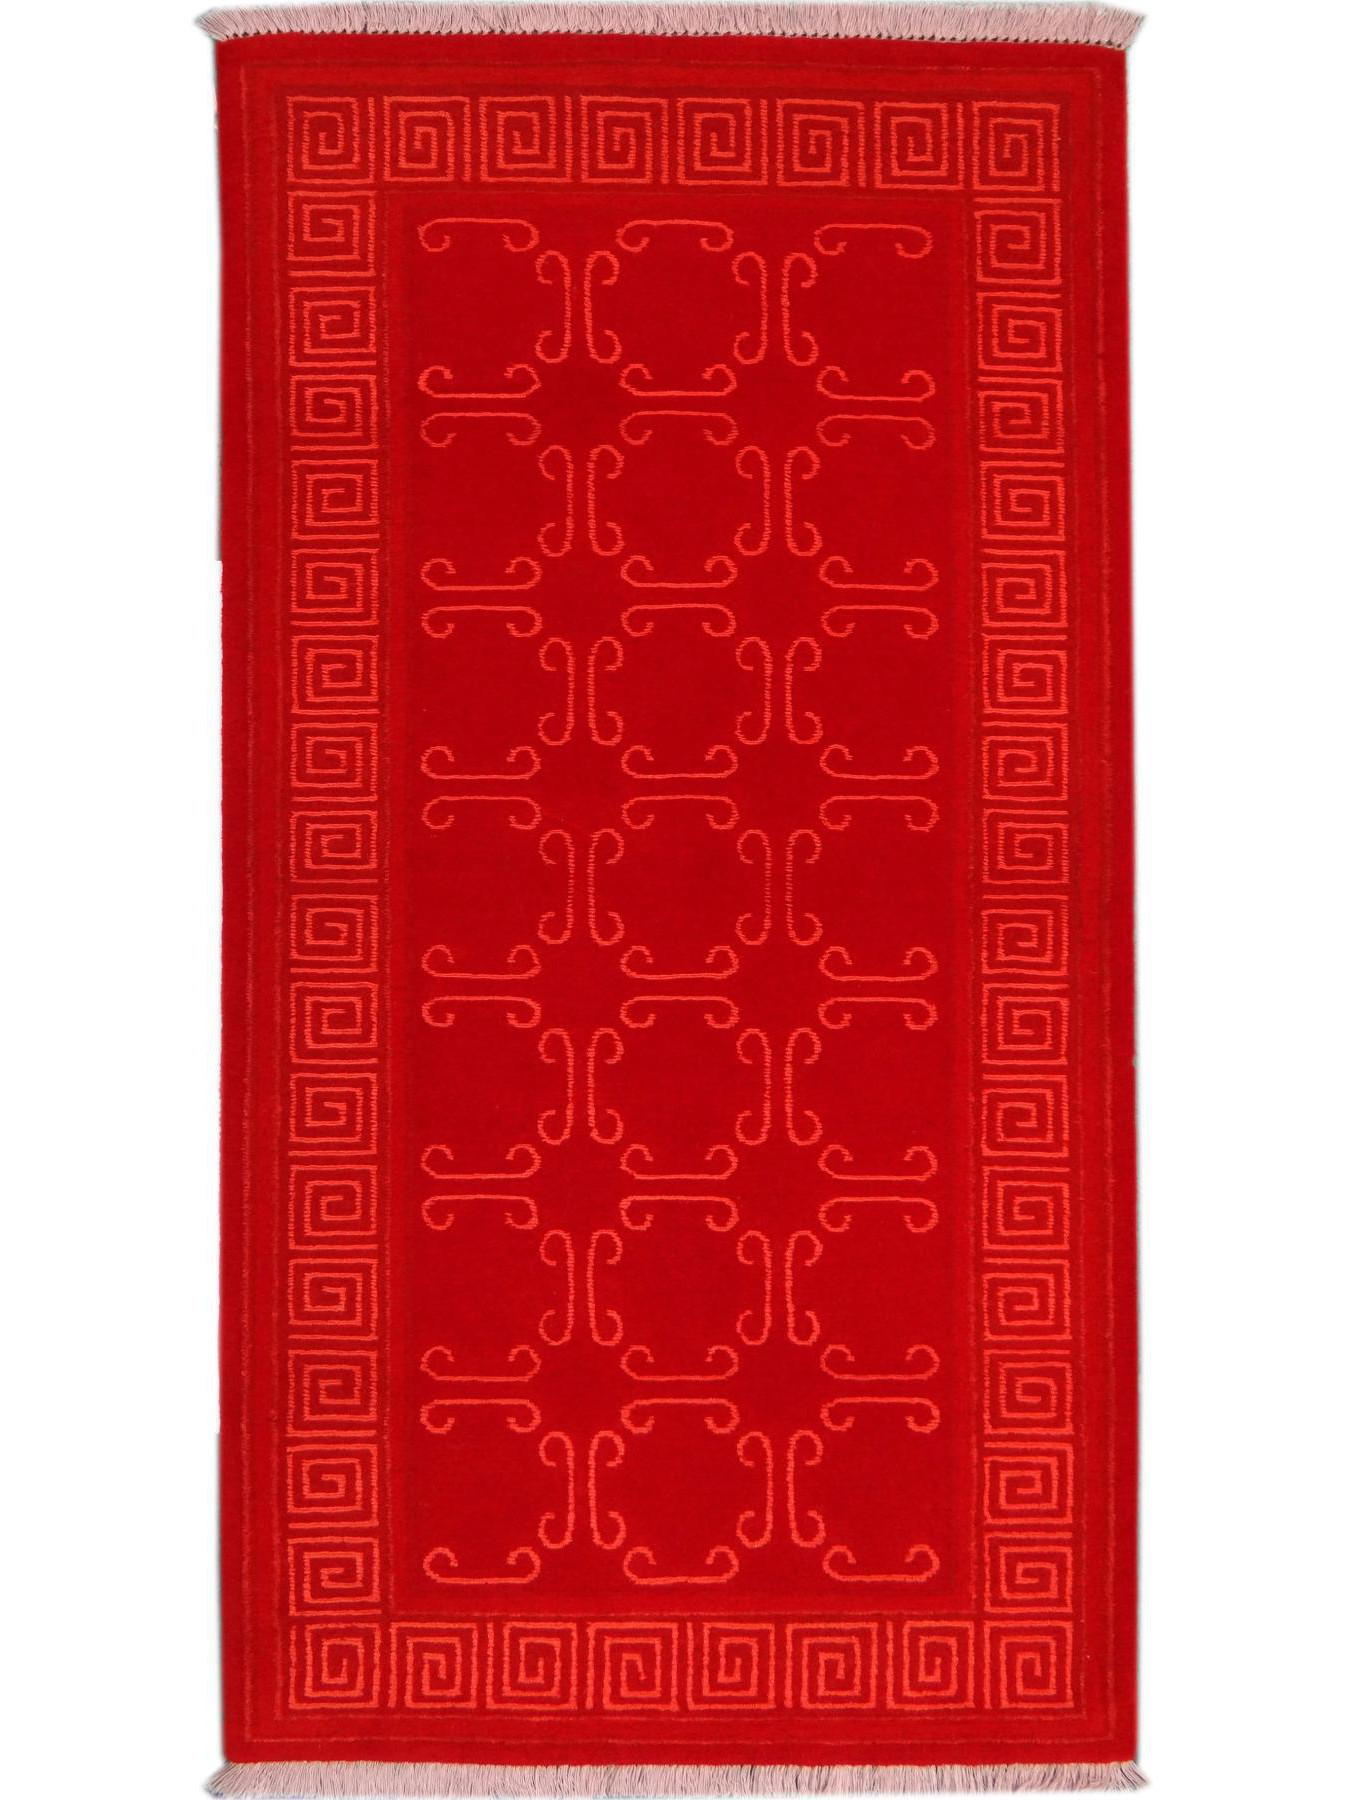 Luxury carpets - GRECO - S5525 RED